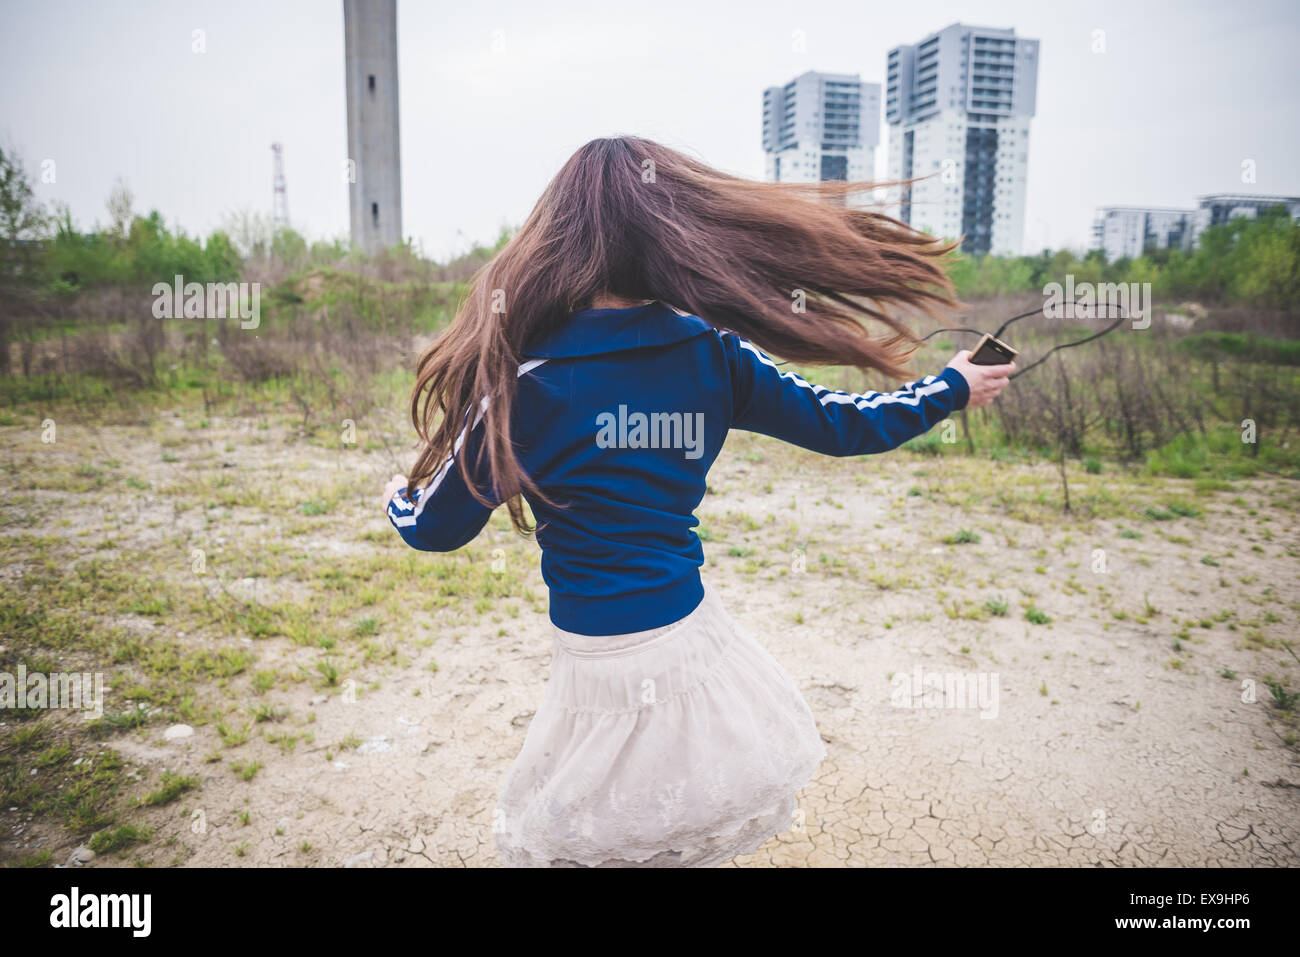 beautiful woman dancing in a desolate lurban landscape - Stock Image